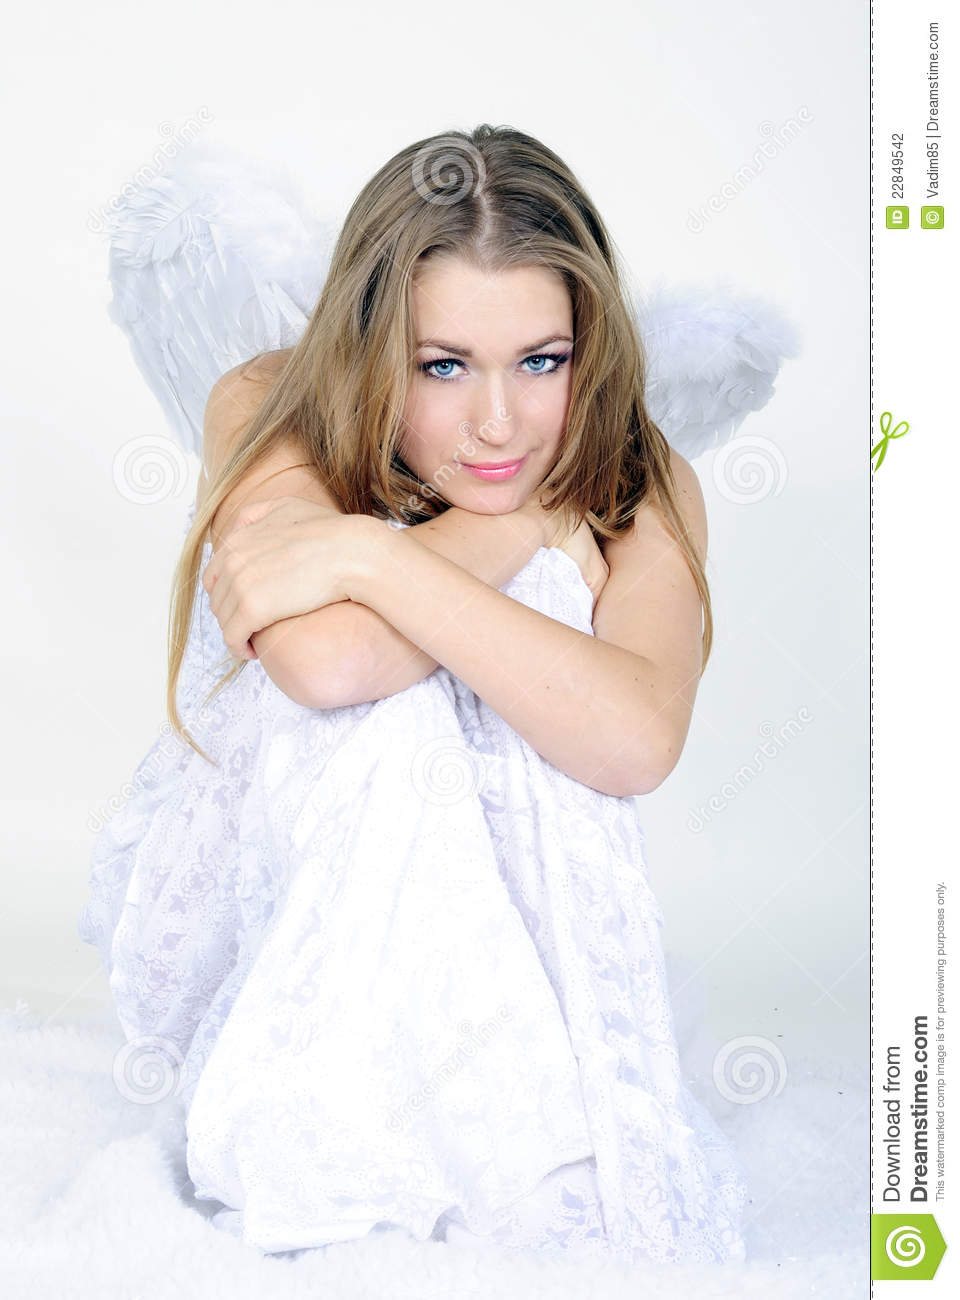 The Young Beautiful Girl An Angel With Wings Stock Photo Image Of